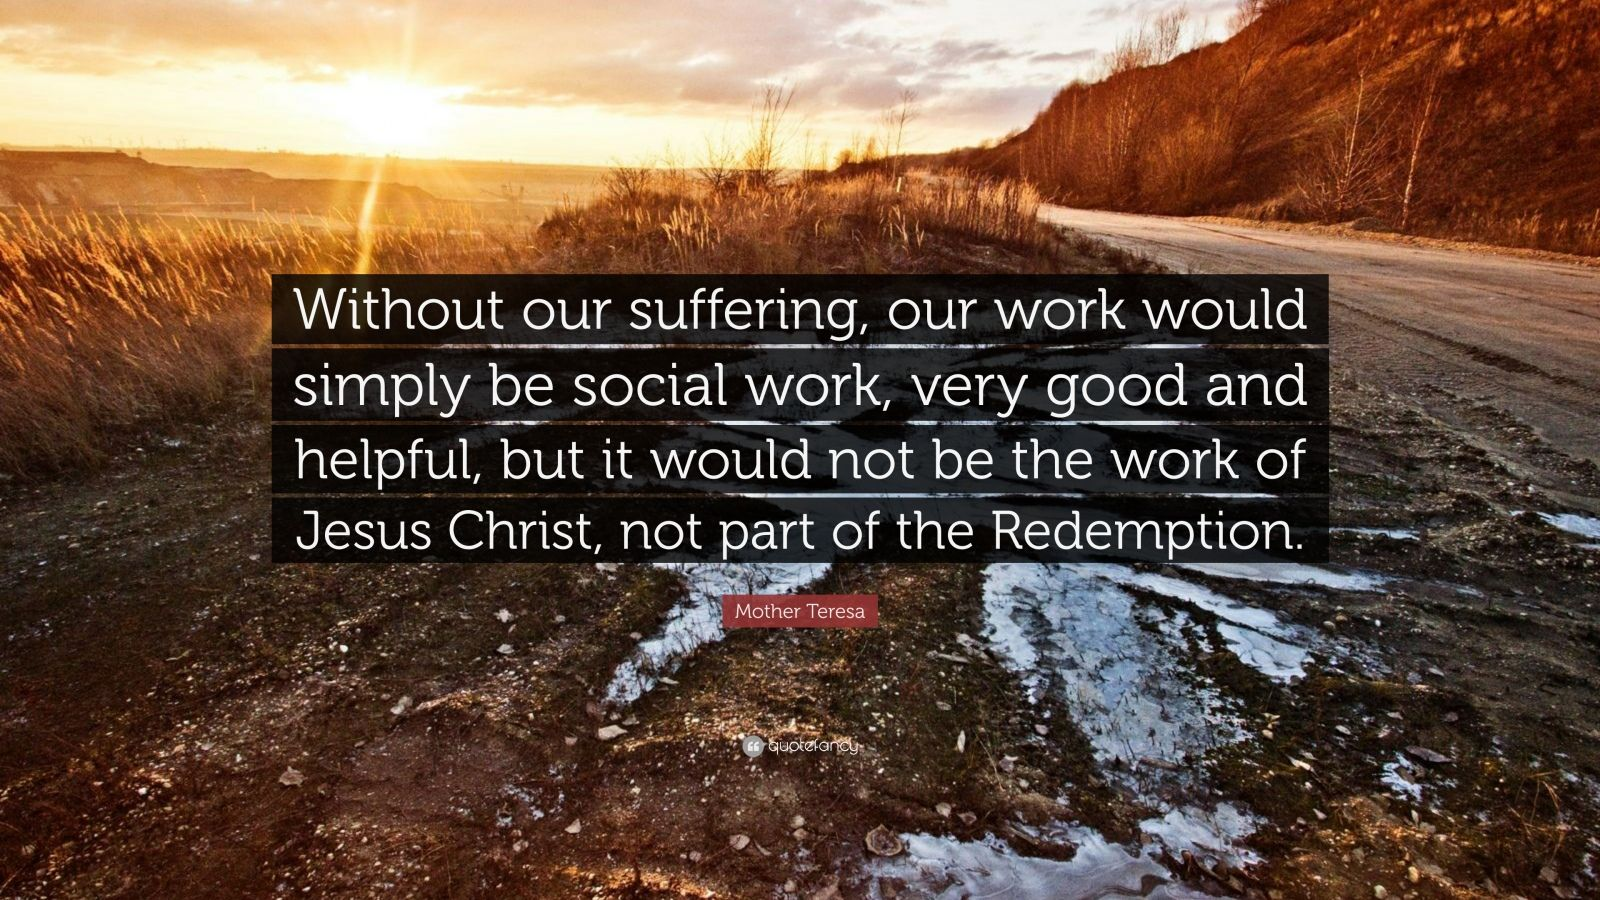 "Mother Teresa Quote: ""Without our suffering, our work would simply be social work, very good and helpful, but it would not be the work of Jesus Christ, not part of the Redemption."""